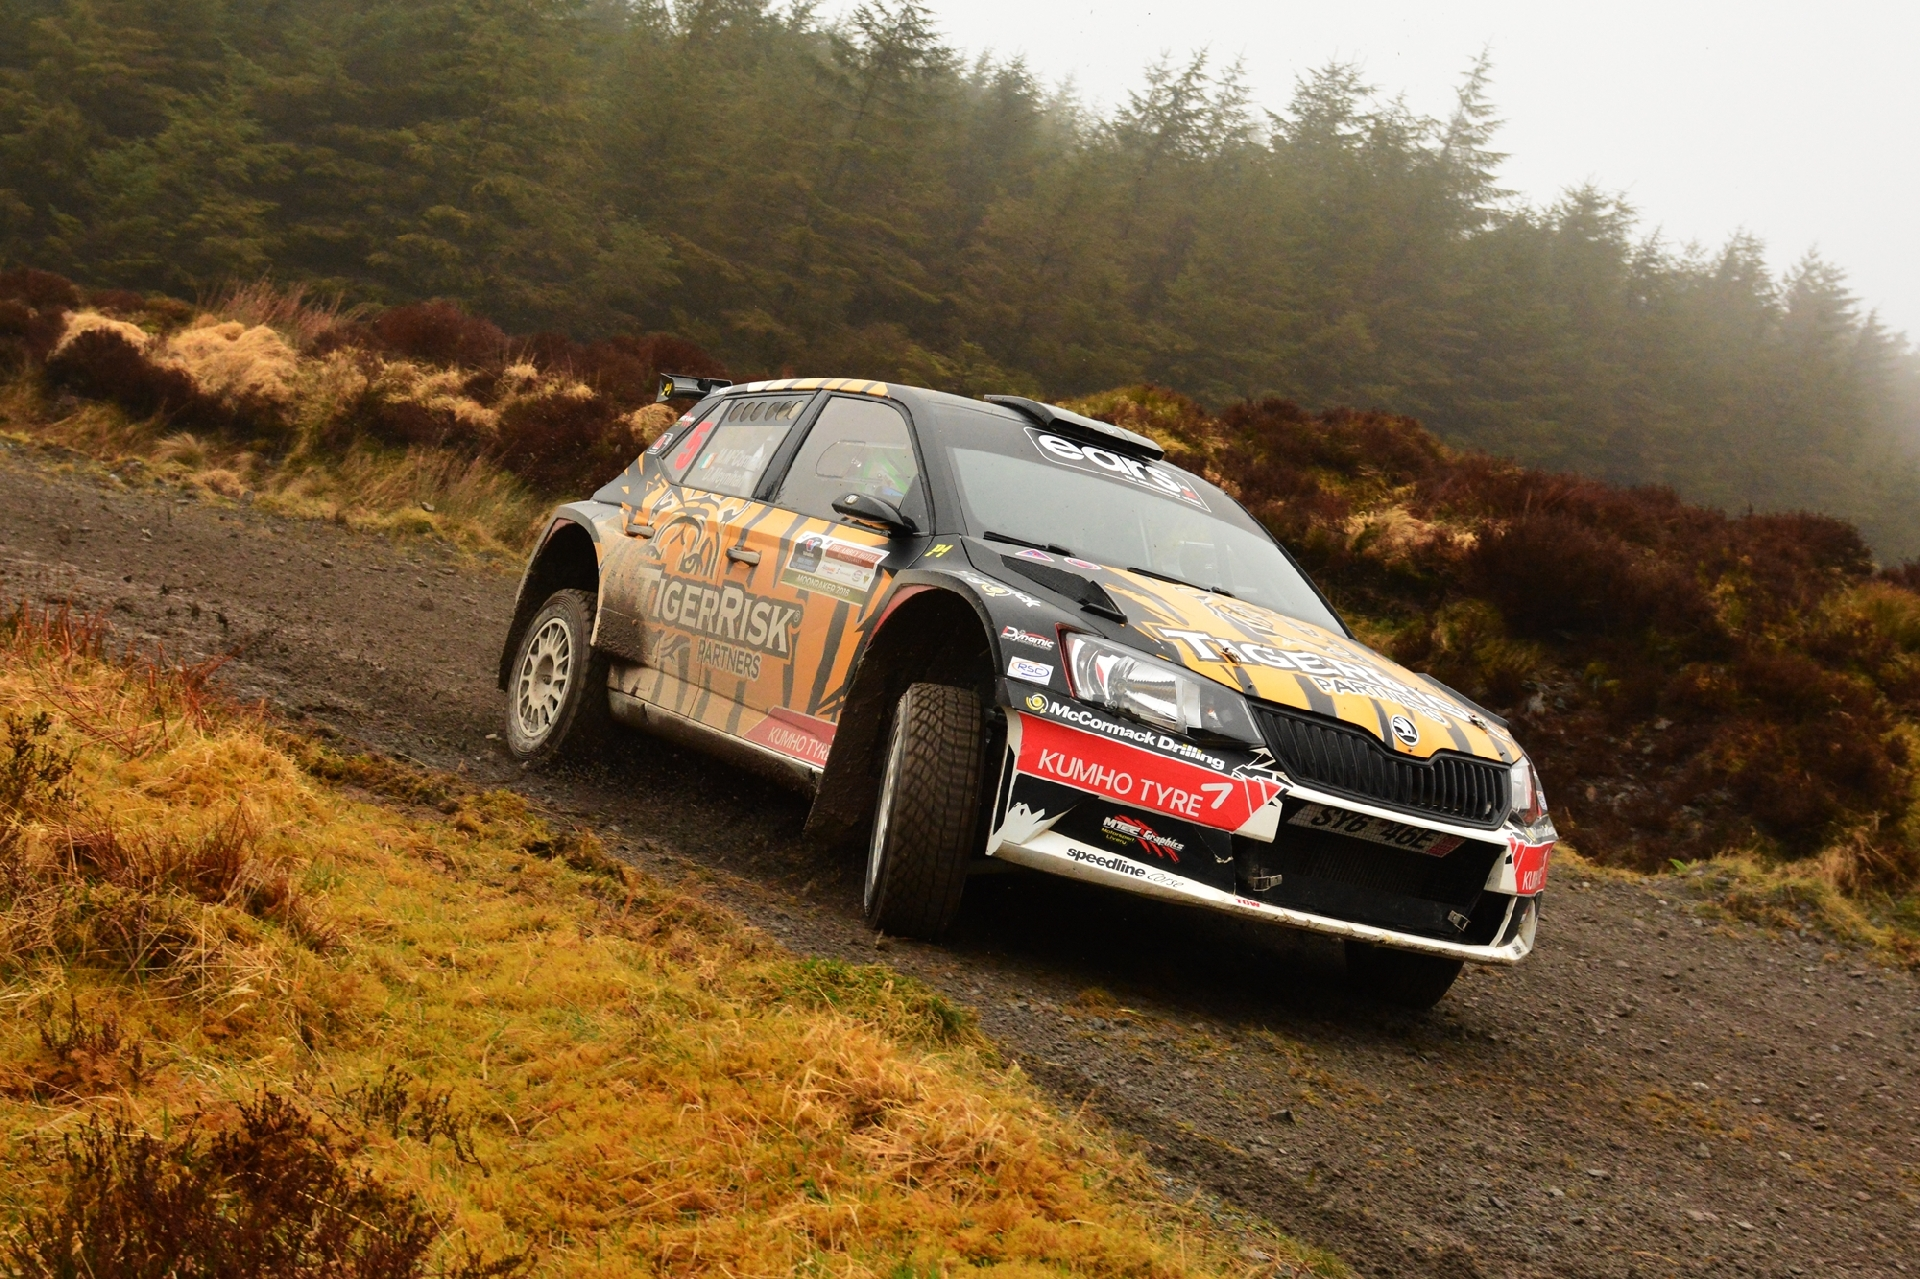 Marty McCormick Wins in Munster